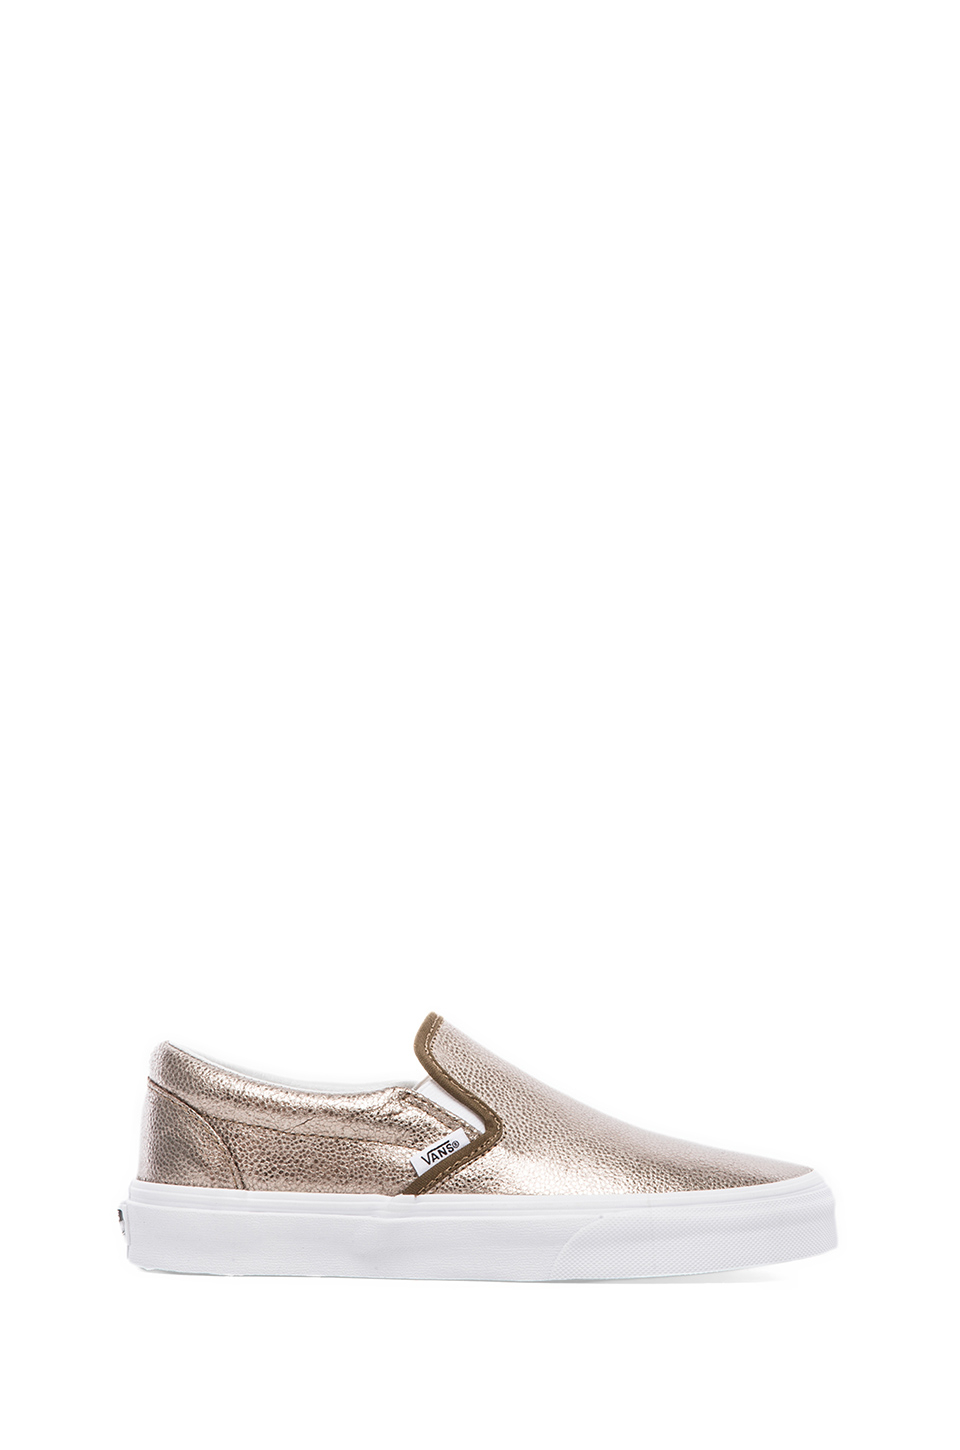 vans classic slip on sneaker in gold bronze lyst